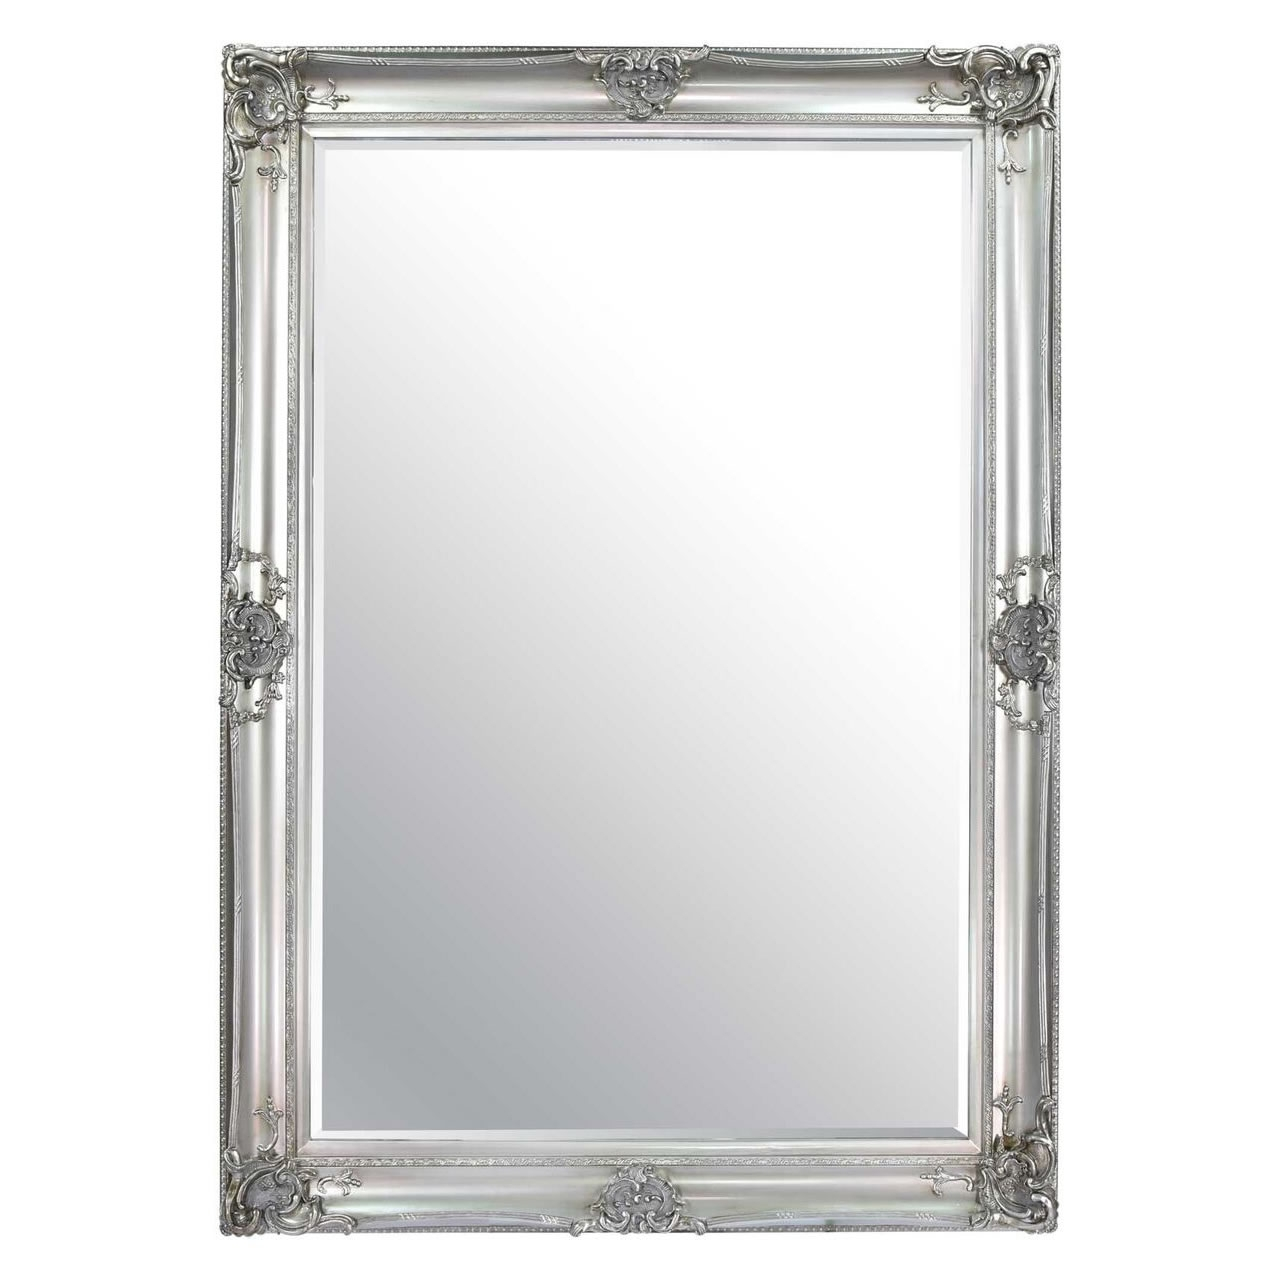 Ornate Framed Mirrors Regarding Large Black Ornate Mirror (View 15 of 15)